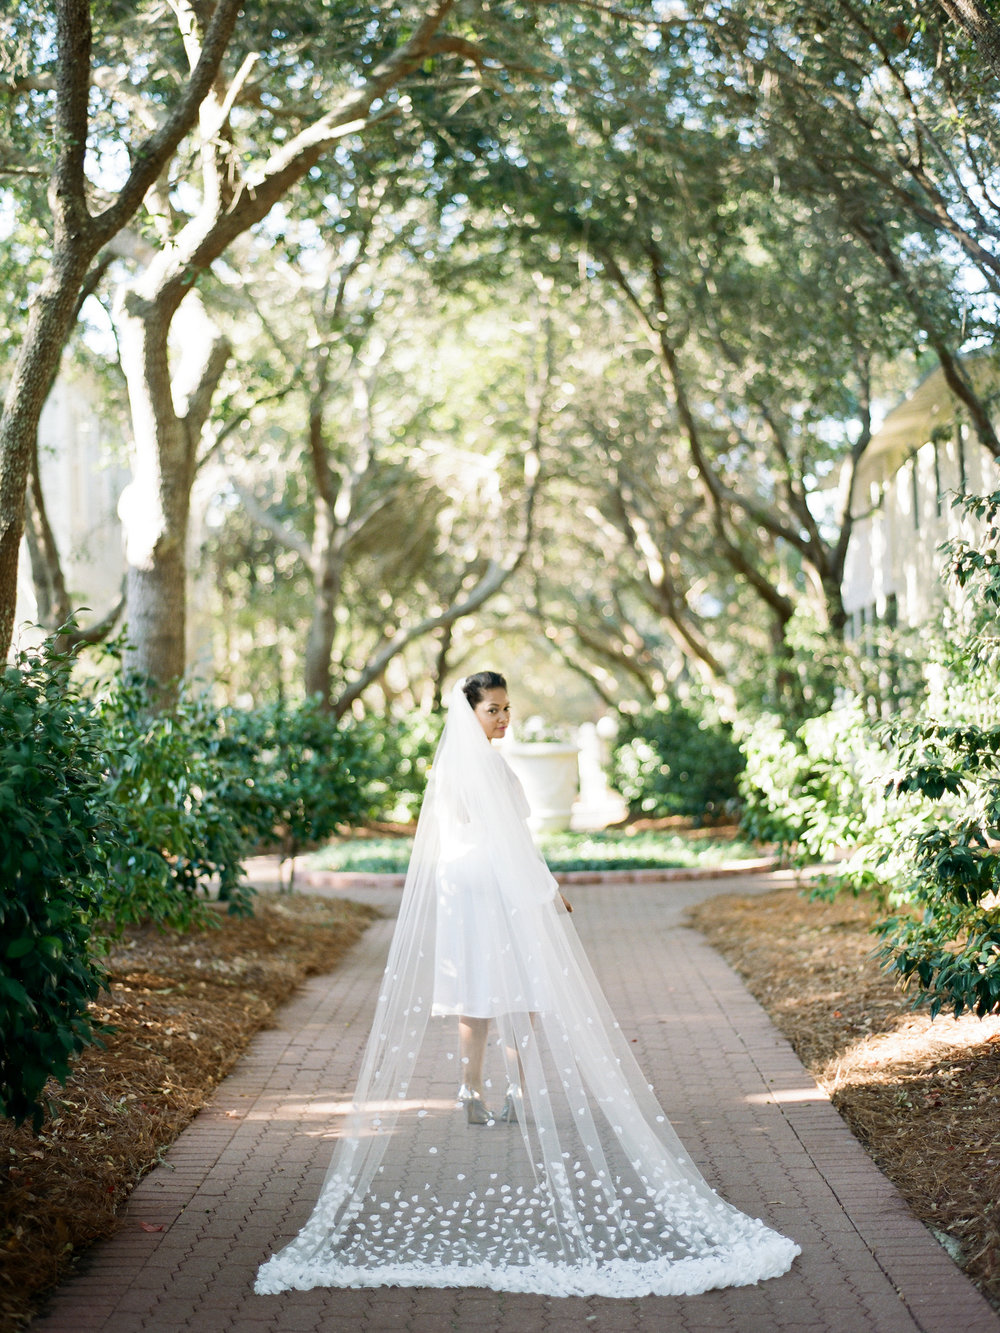 casandra_and_andy_carillon_beach_wedding_photographer_shannon_griffin_bride_and_groom-69.jpg